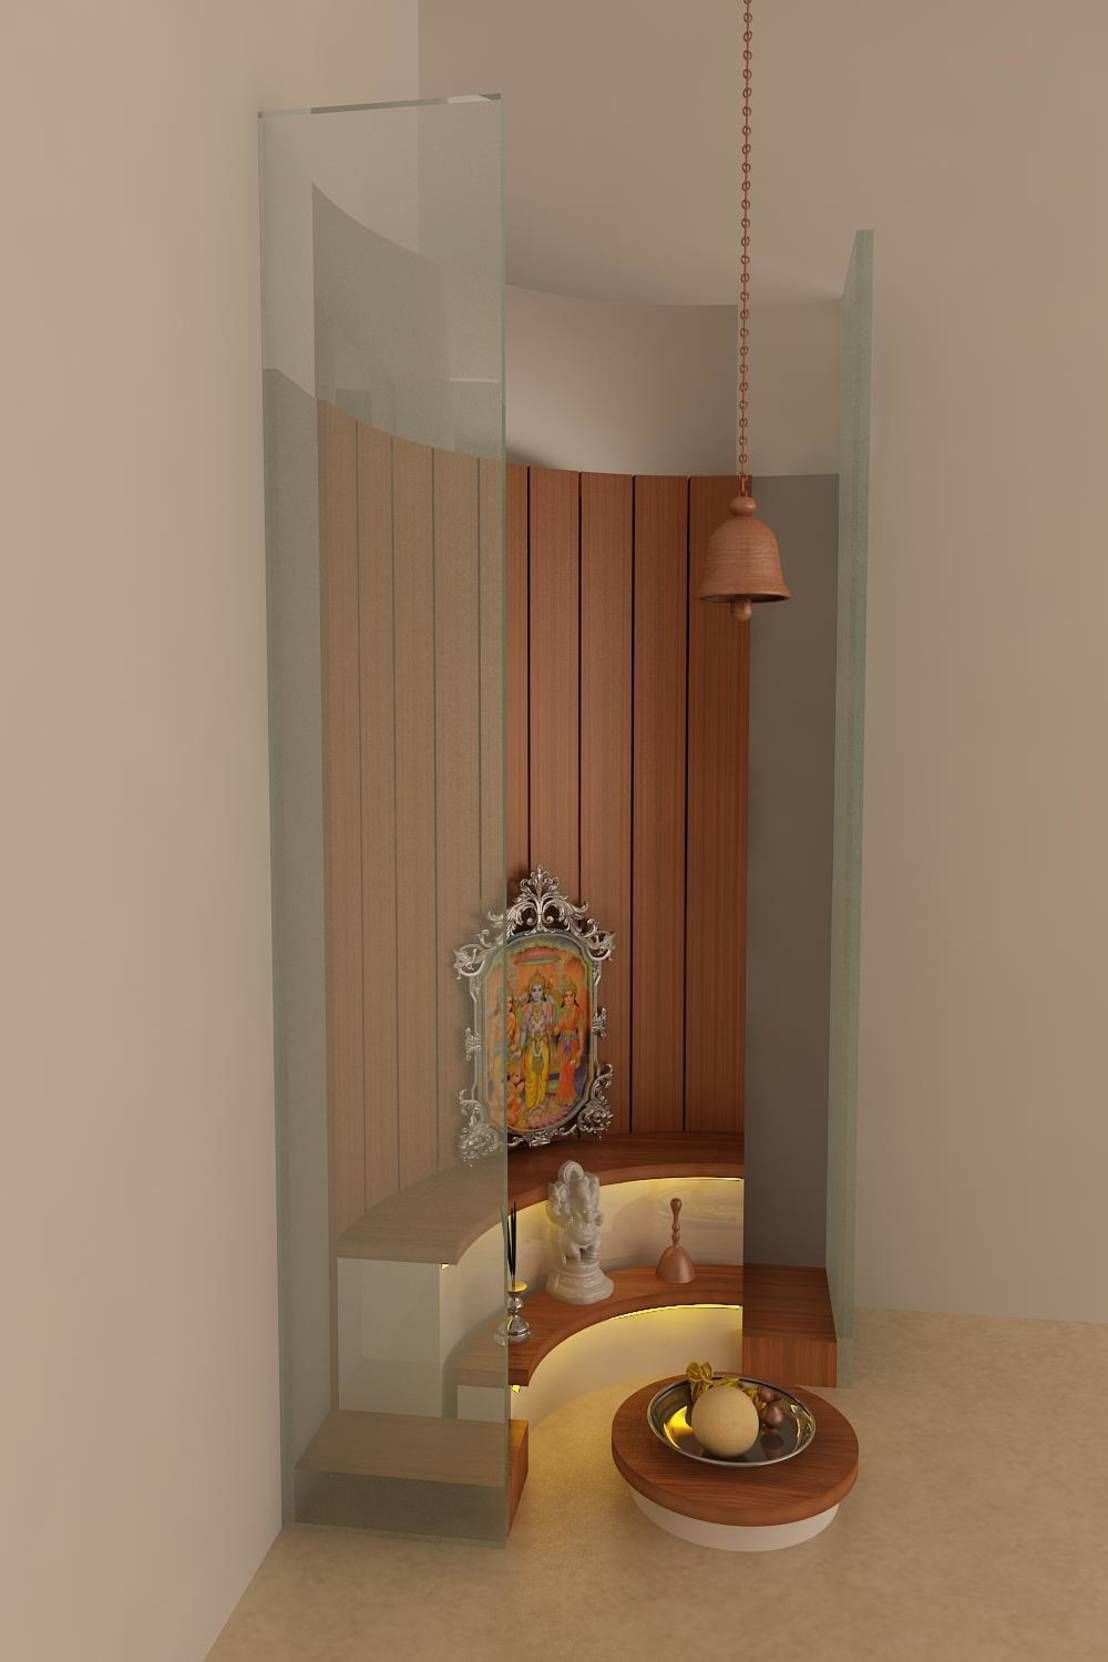 OMG Pooja Room Designs And Set Up For Indian Homes  Pinteres - Pooja mandir for home designs